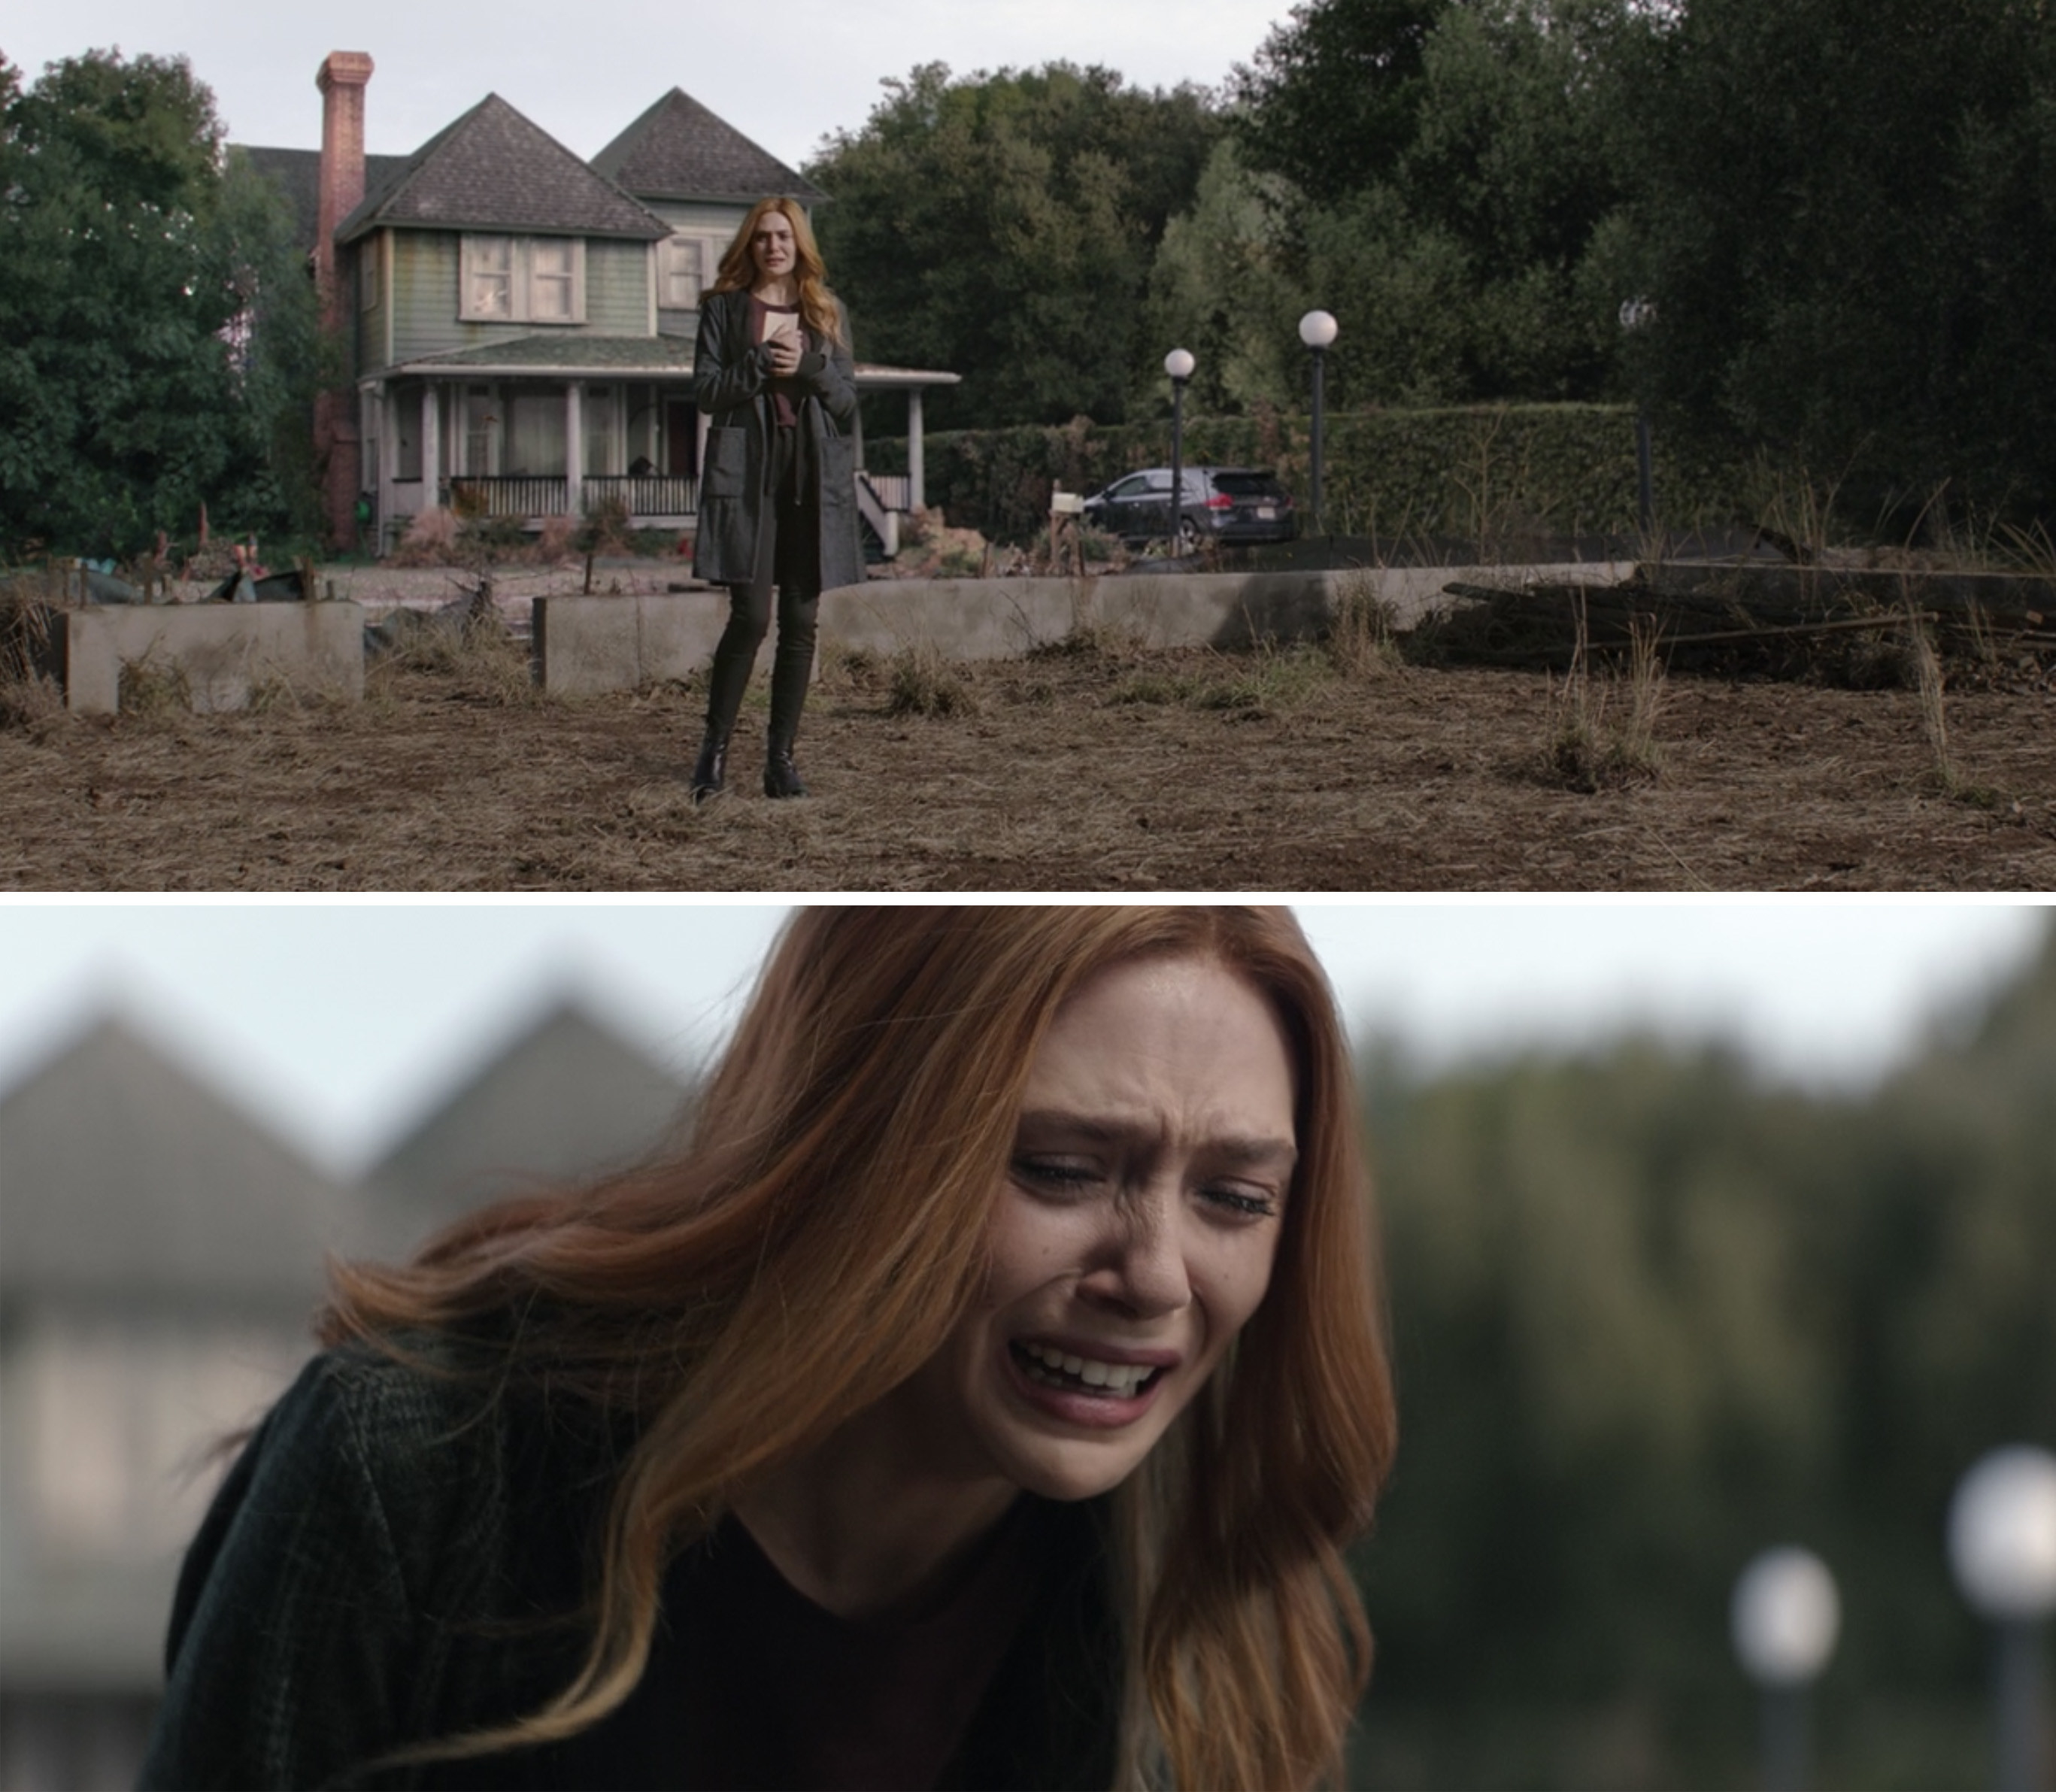 Wanda weeping and standing on the lot where she and Vision's house would be